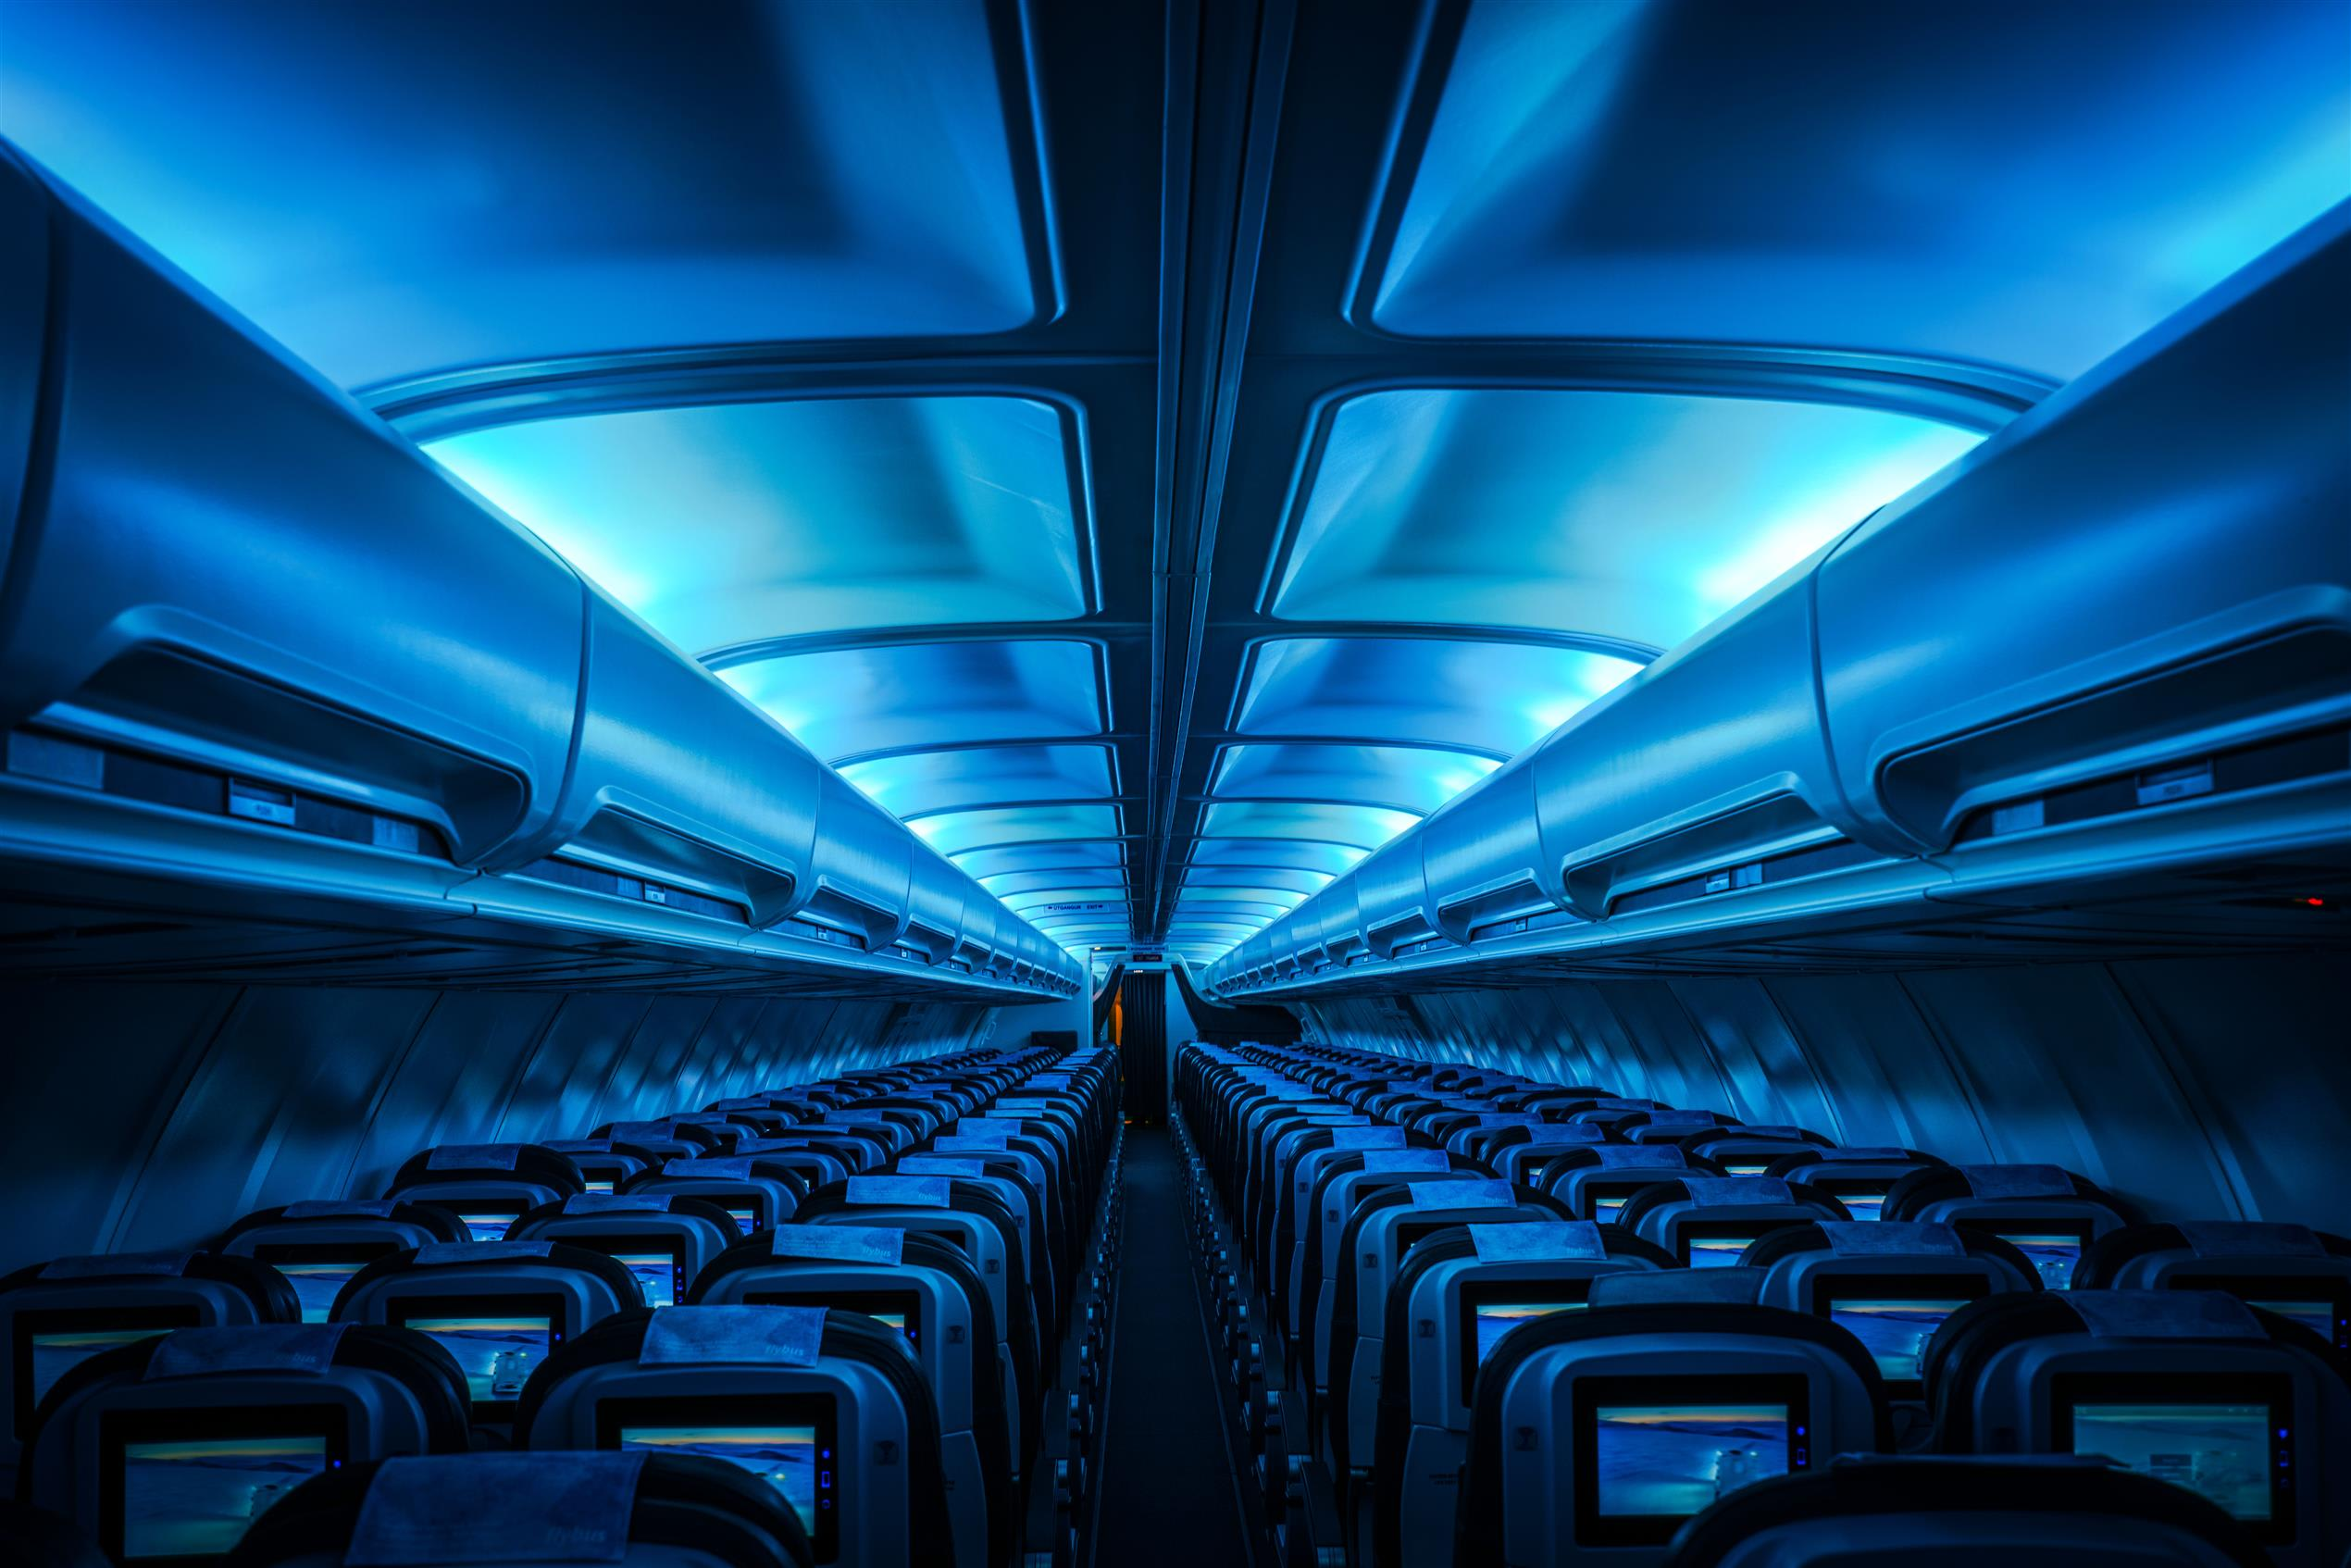 the inside of stand empty Icelandair aircraft lit up by dimmed blue overhead lights